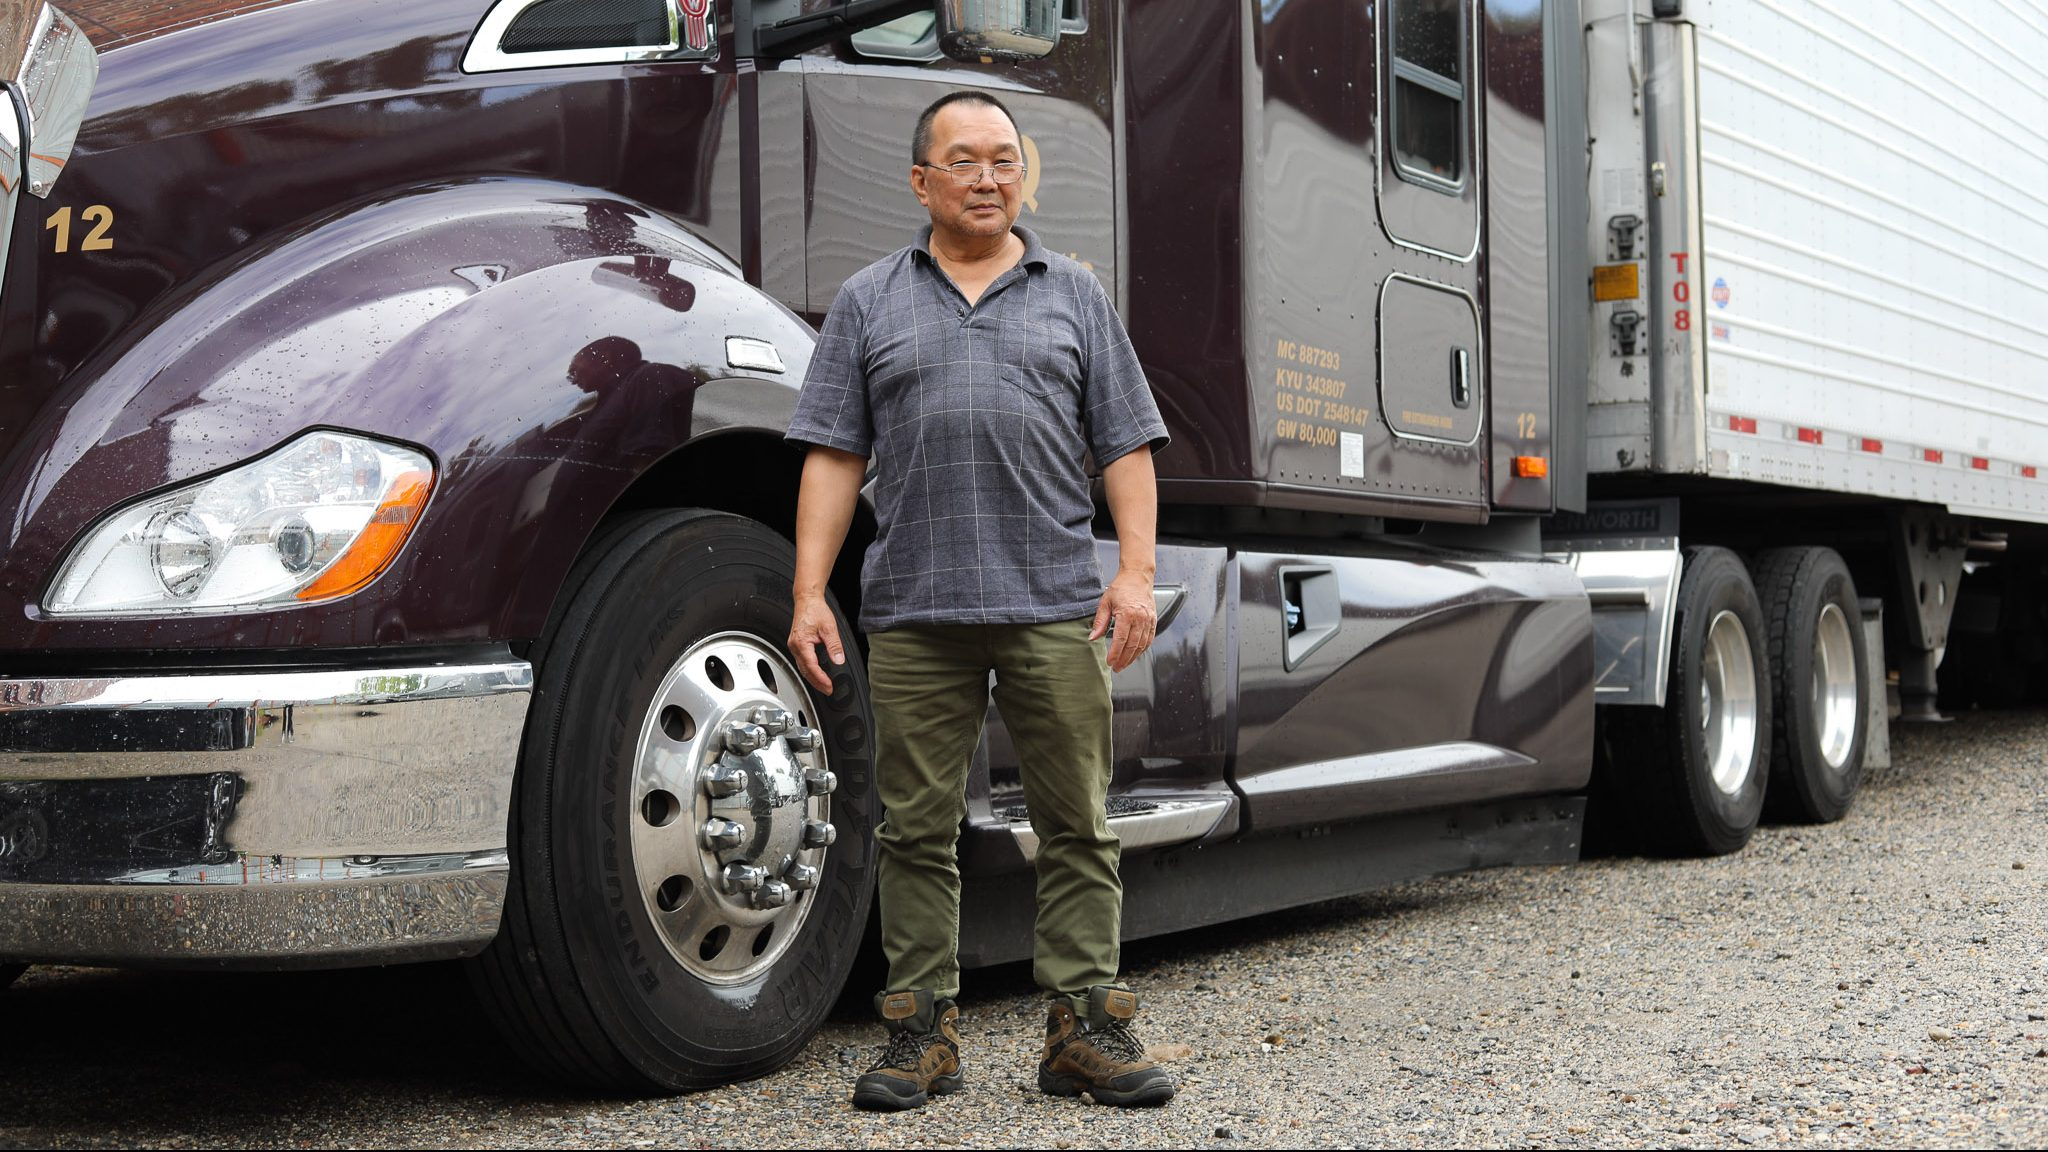 Amid the COVID-19 pandemic, Chinese truck drivers have been overworking to deliver essential goods on deadline, often exceeding their 11 hour on-the-road driving limits.